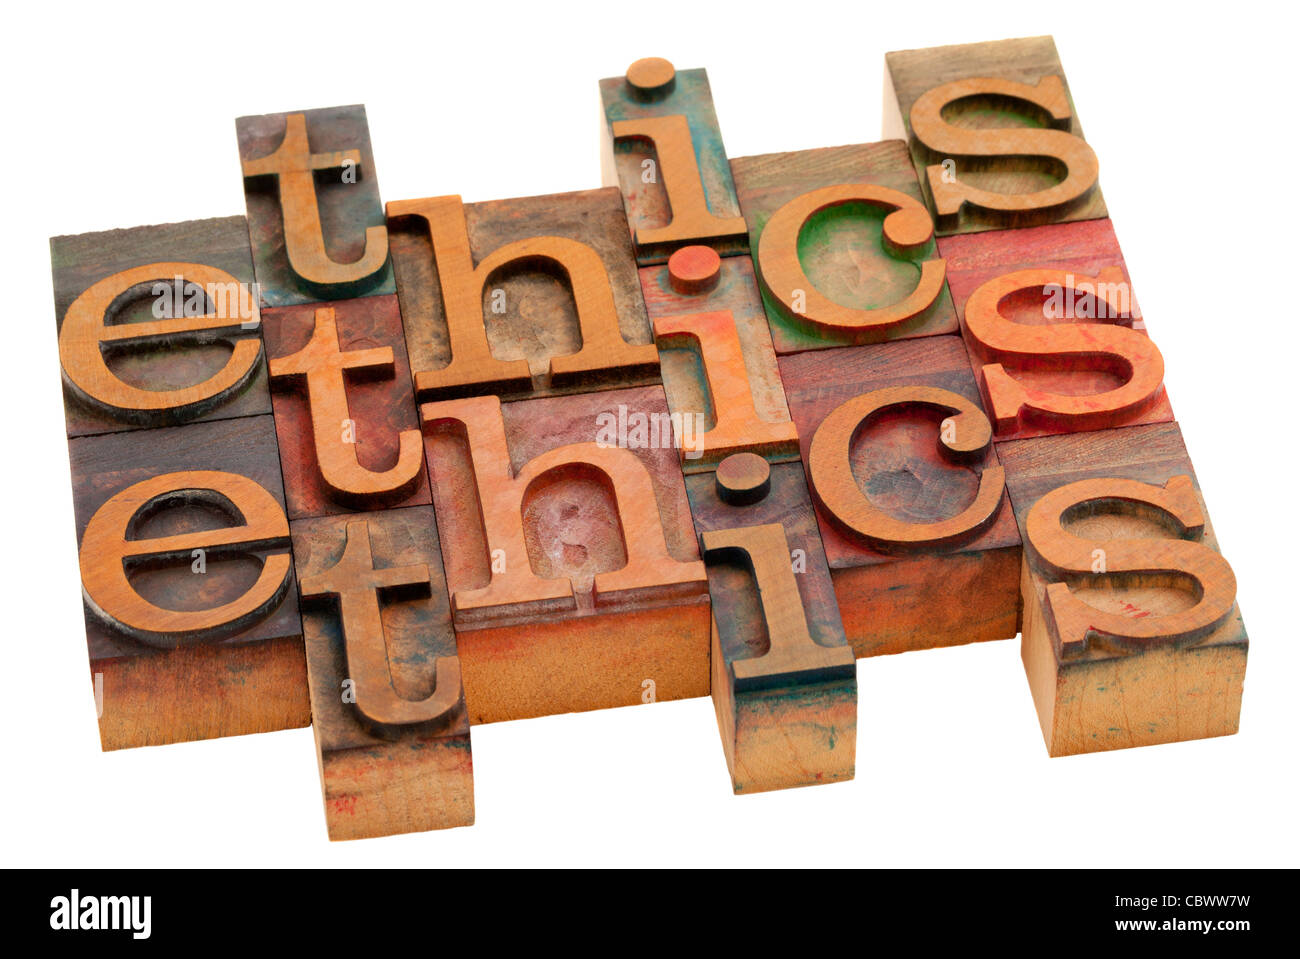 ethics word abstract - vintage wooden letterpress printing blocks isolated on white - Stock Image